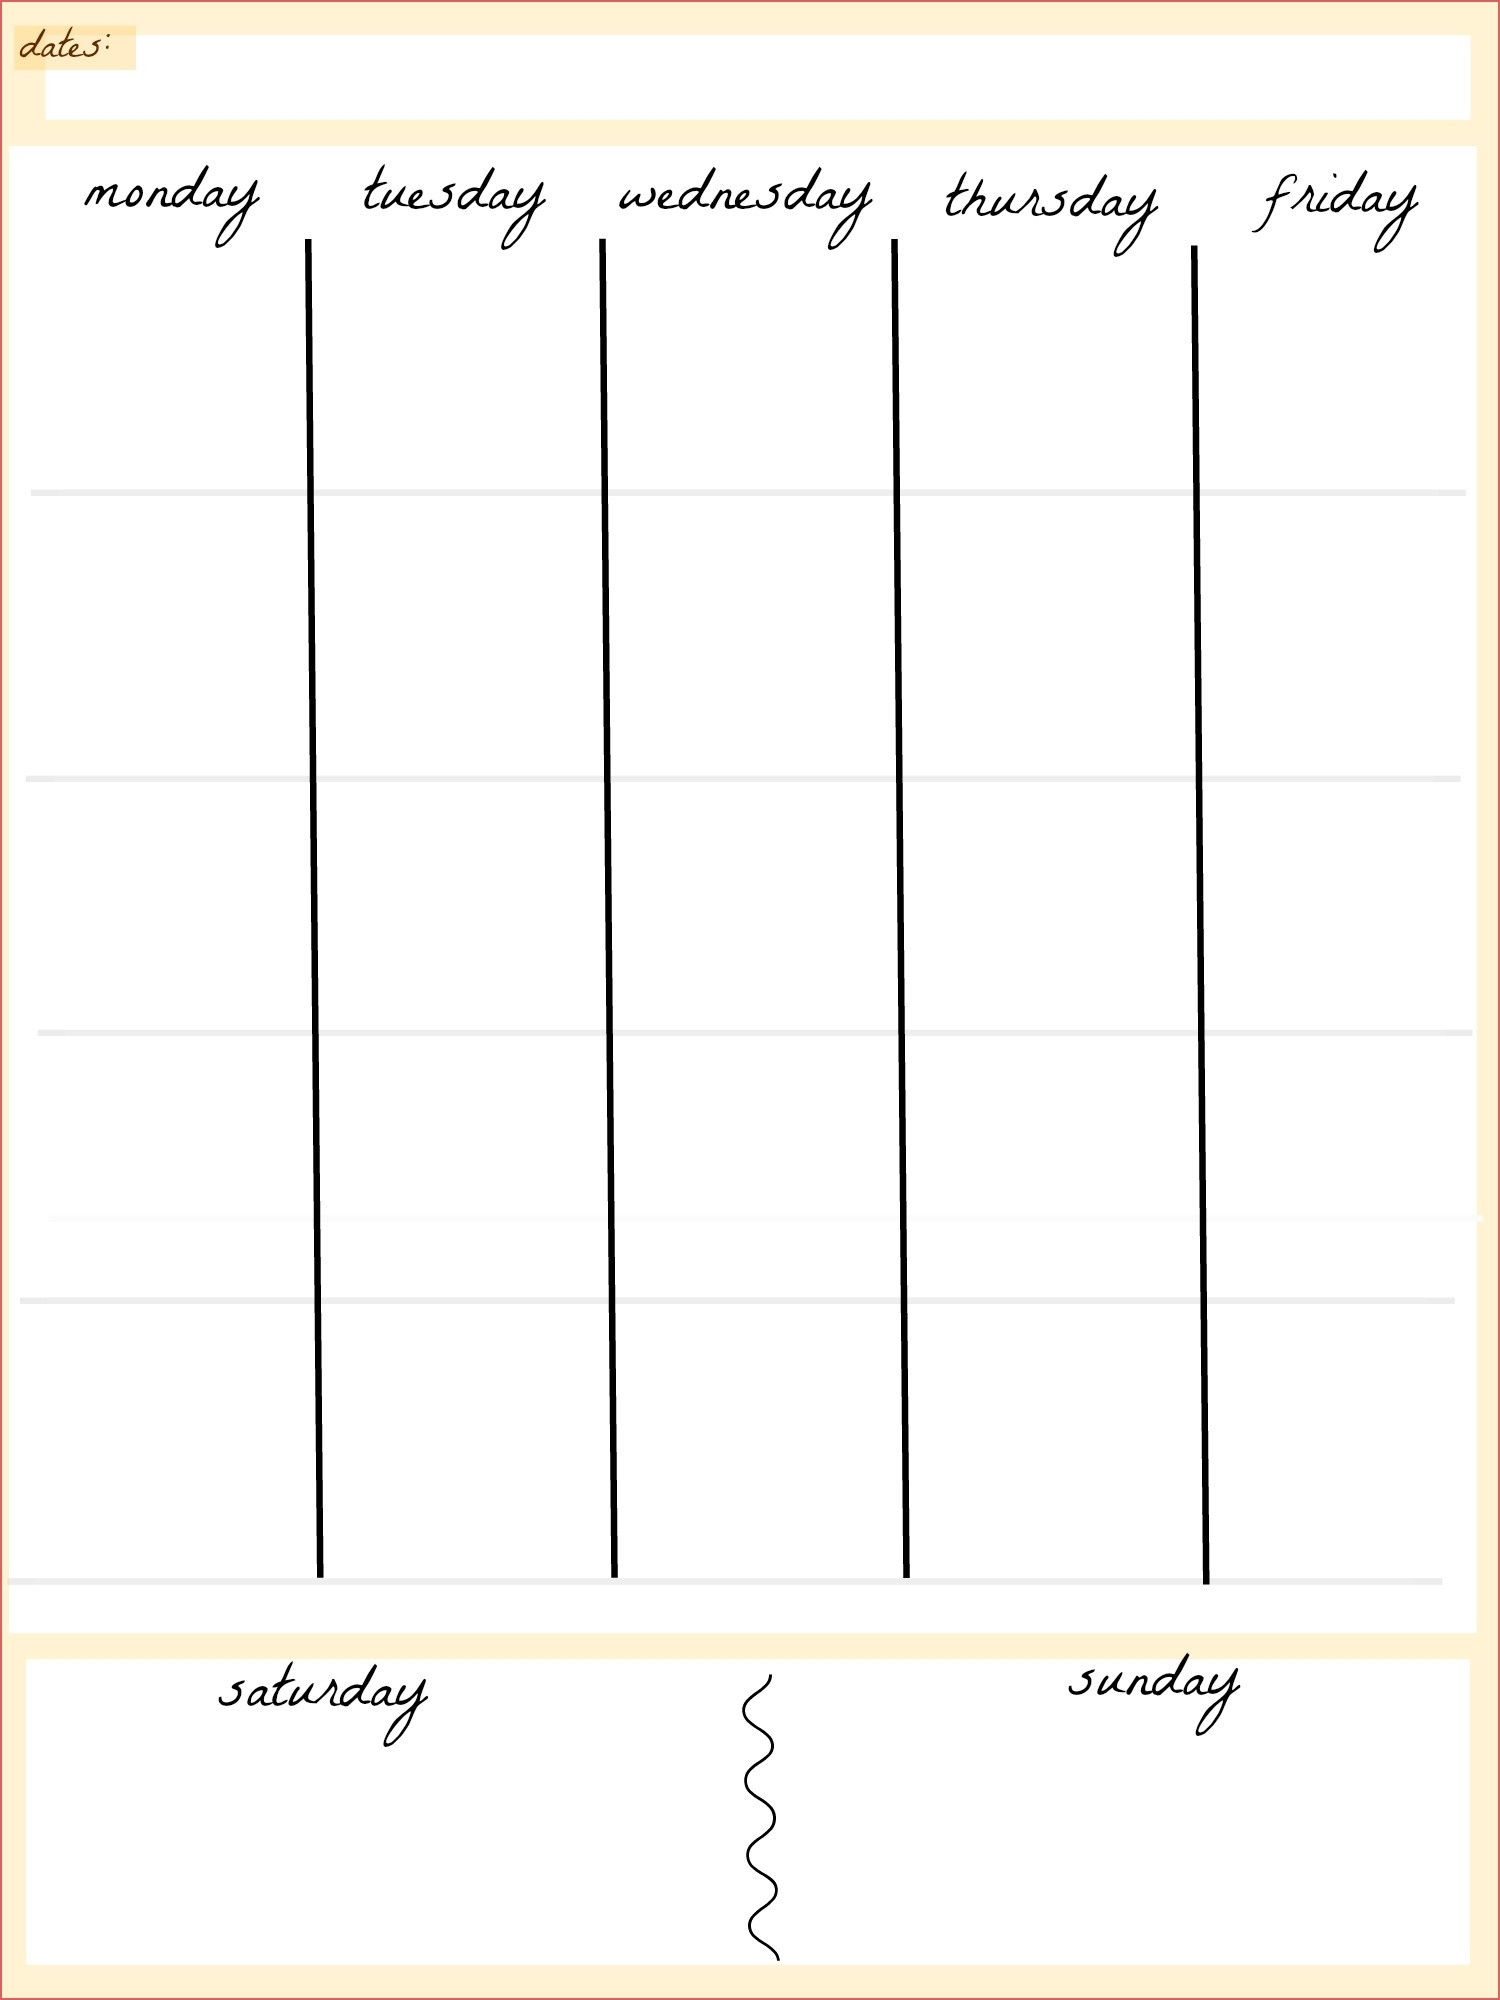 Day Calendar Printable Blank 5 Day Calendar Printable Calendar pertaining to Blank 5 Day Calendar Printable